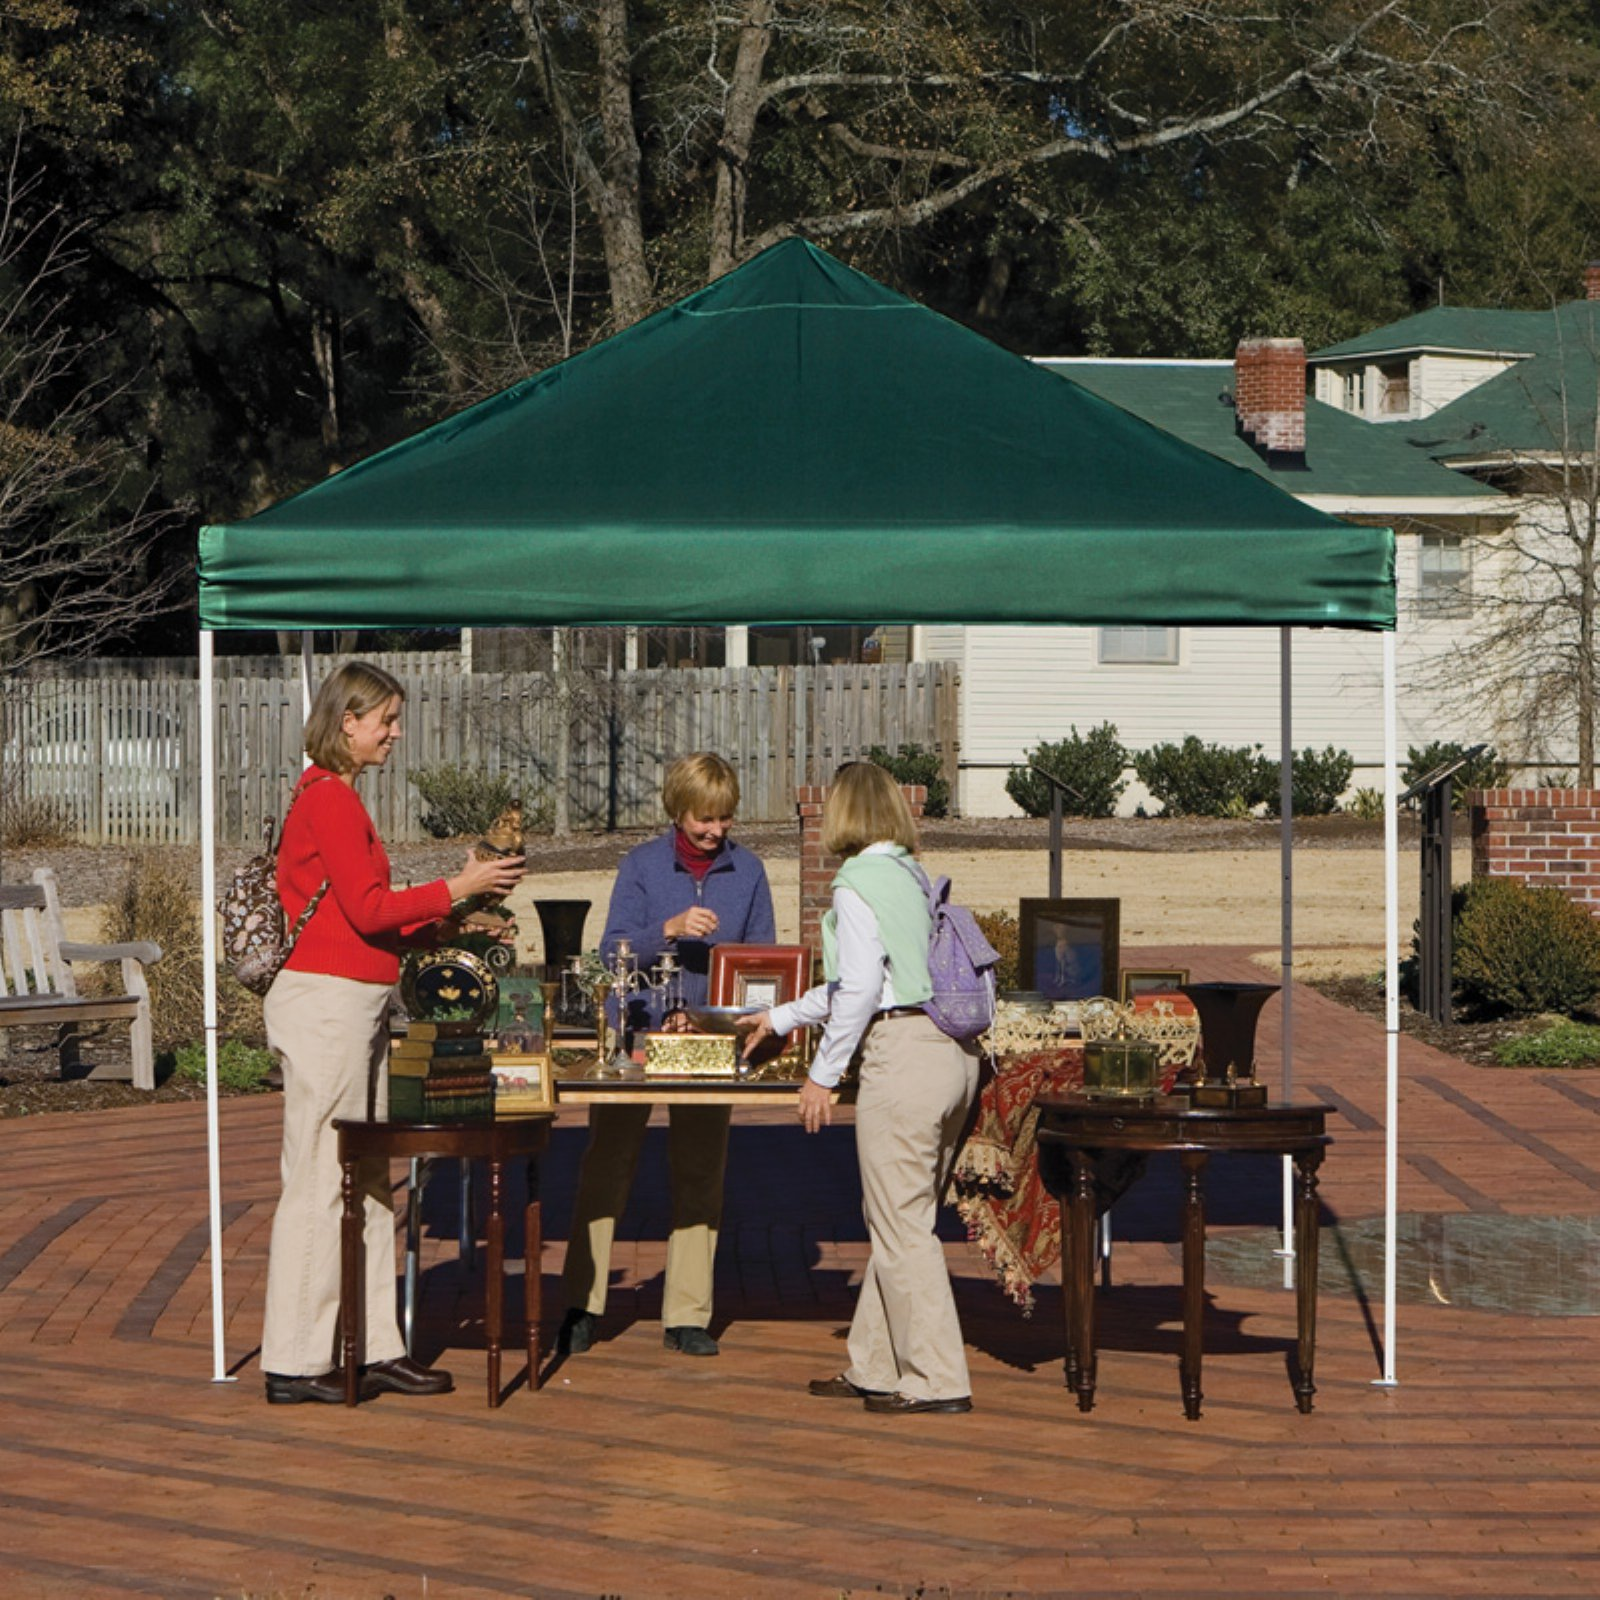 10' x 10' Pro Pop-up Canopy Straight Leg, Green Cover